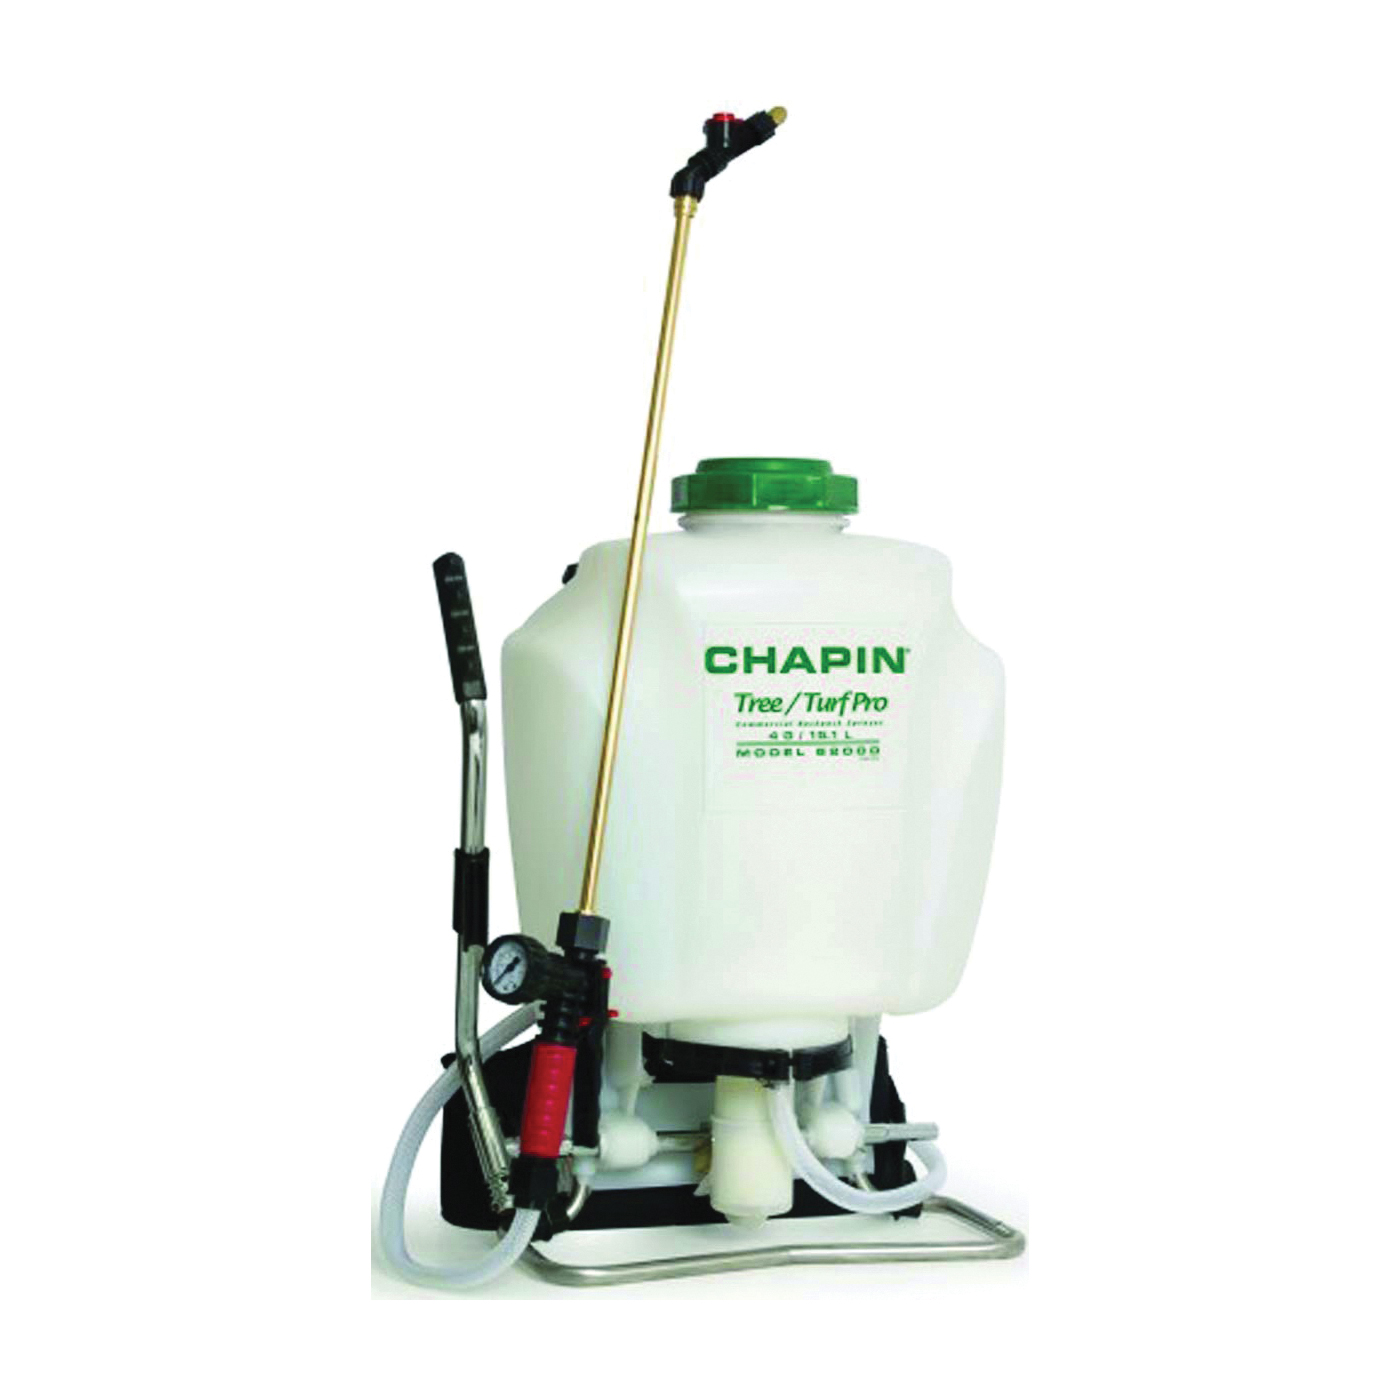 Picture of CHAPIN 62000 Backpack Sprayer, 4 gal Tank, Poly Tank, 25 ft Horizontal, 23 ft Vertical Spray Range, 48 in L Hose